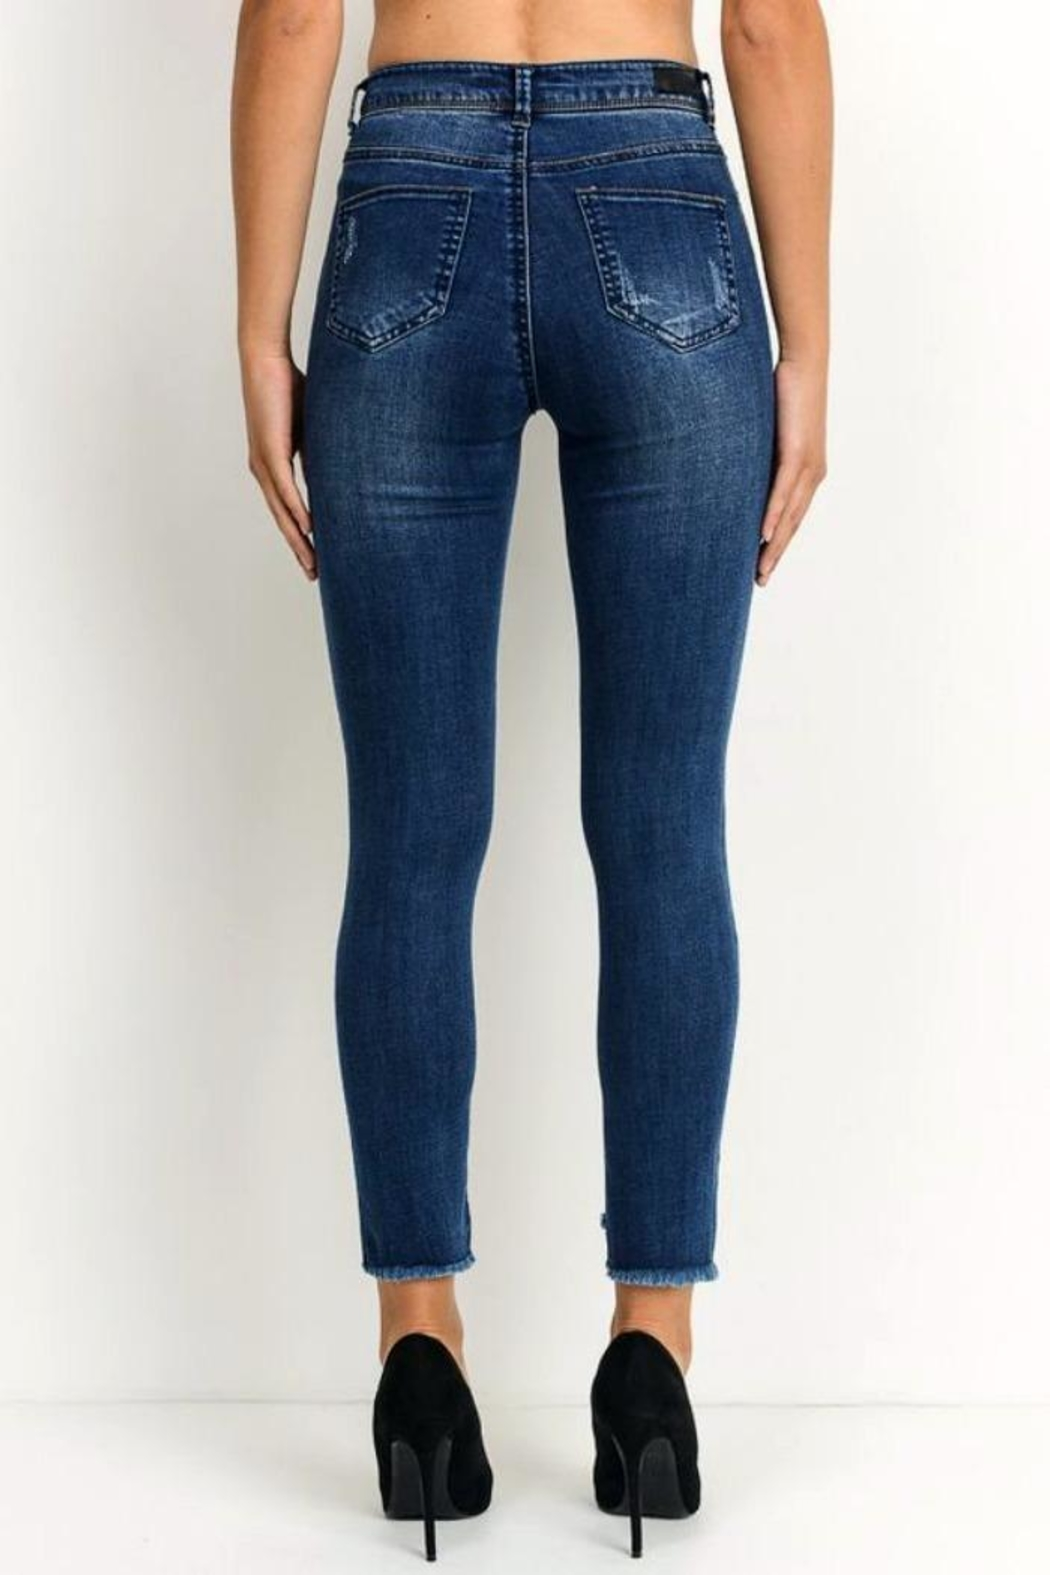 Simply Chic Uneven Hem Jeans - Side Cropped Image